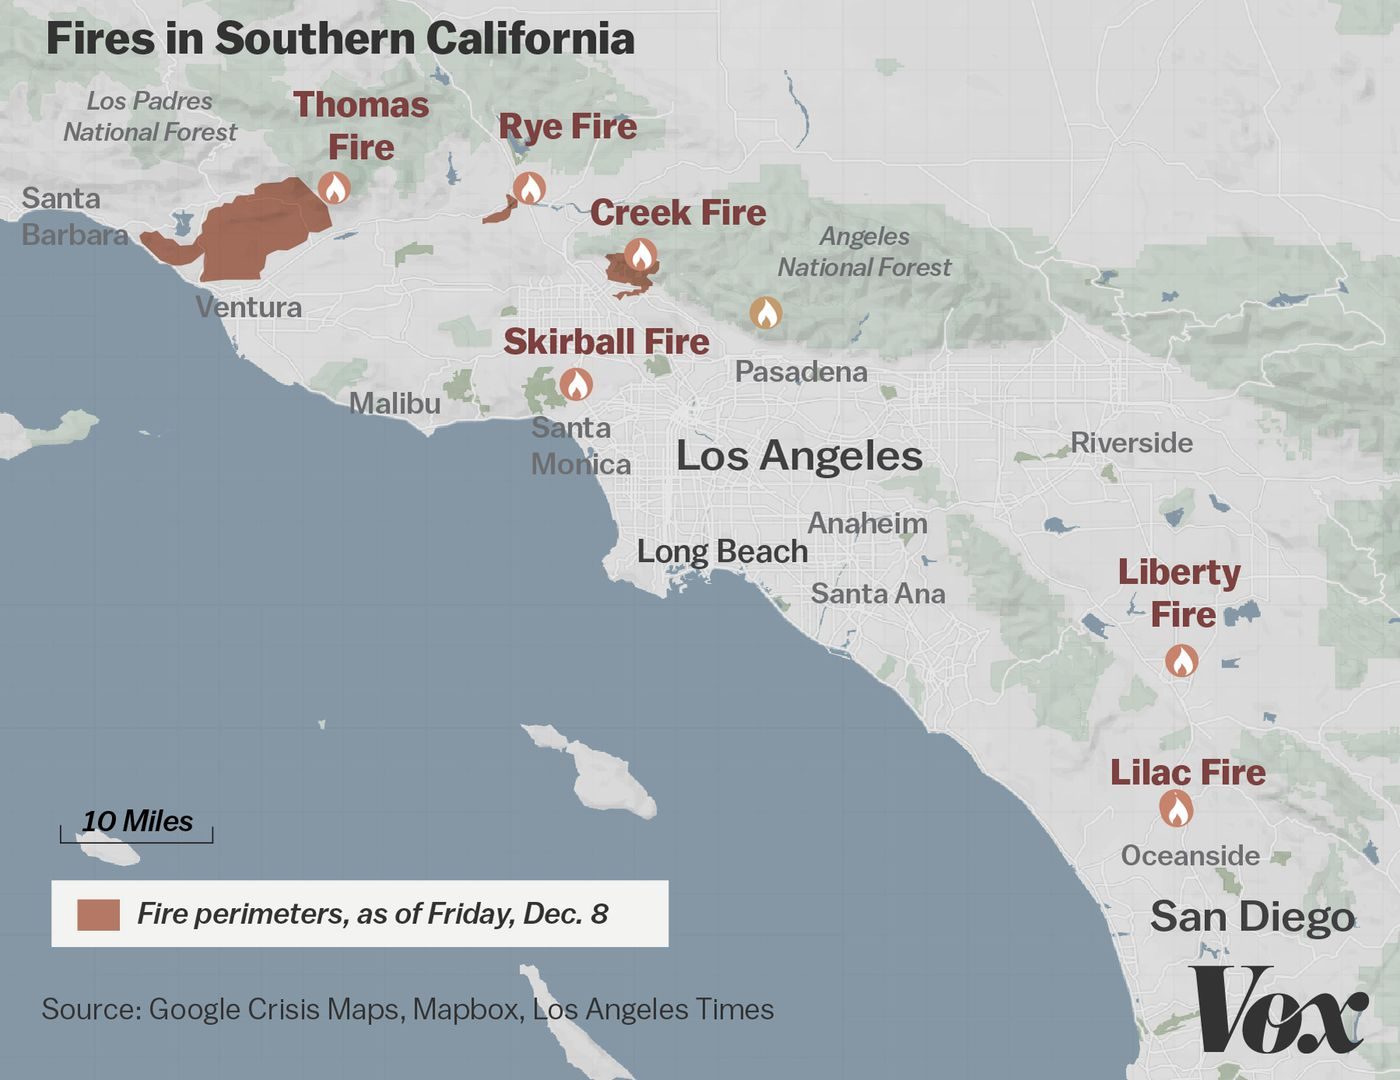 Map: where Southern California's mive blazes are burning ... on pennsylvania beaches map, southern ca beaches map, charleston beaches map, louisiana beaches map, oceanside beaches map, mississippi beaches map, atlanta beaches map, monterey beaches map, maine beaches map, california beaches map, seattle beaches map, boston beaches map, half moon bay beaches map, delaware beaches map, orlando beaches map, houston beaches map, los angeles beaches map, ventura beaches map, pensacola beaches map, hawaii beaches map,